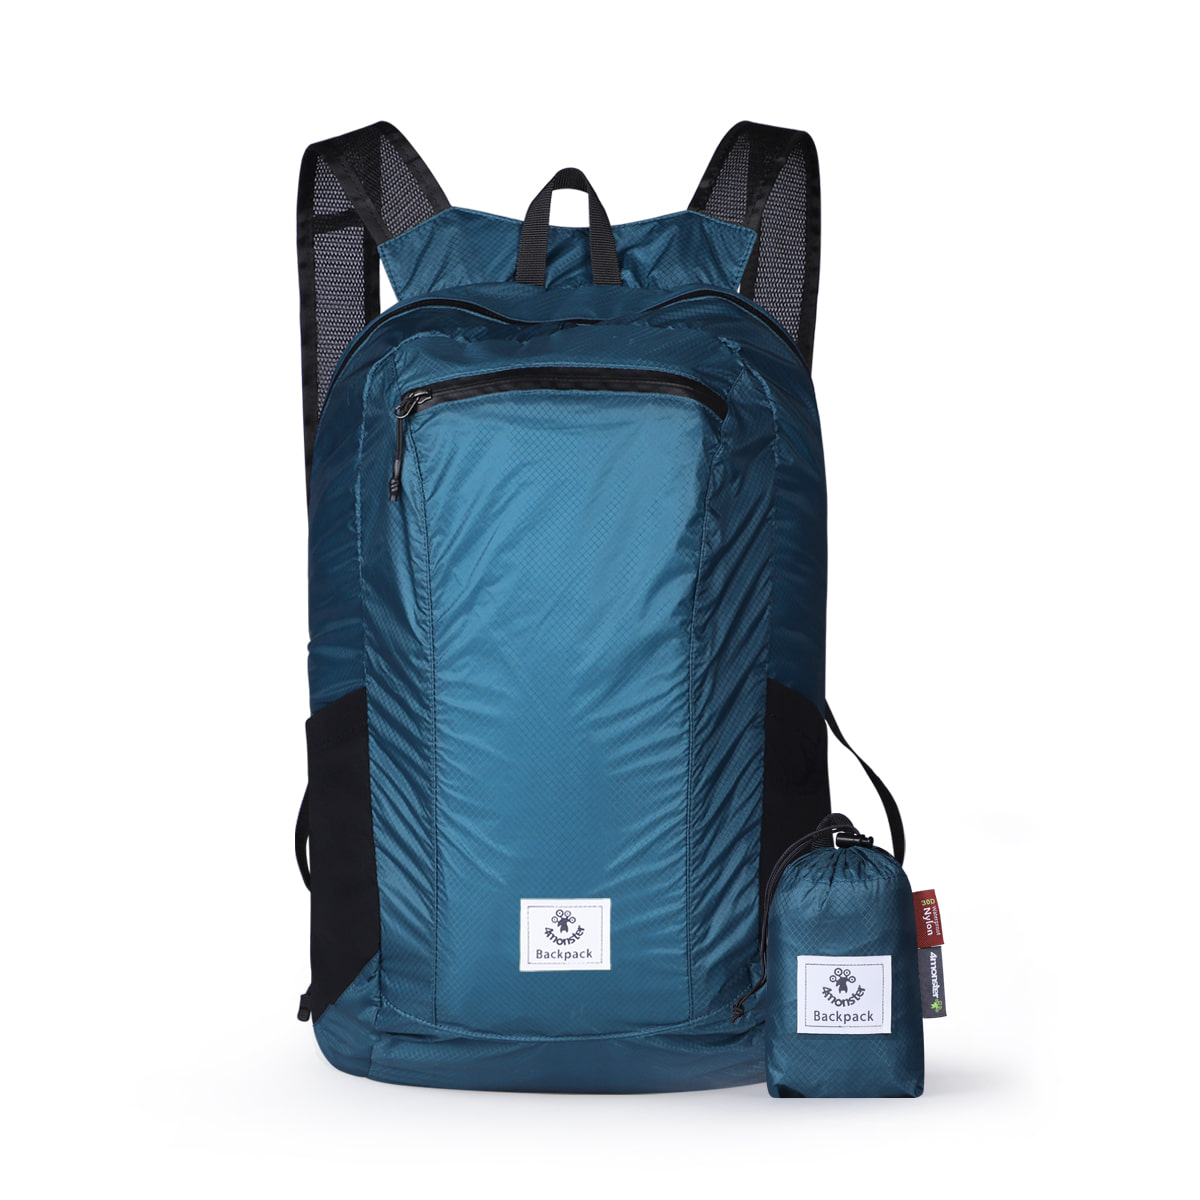 FOLDING BACKPACK 24L BLUE